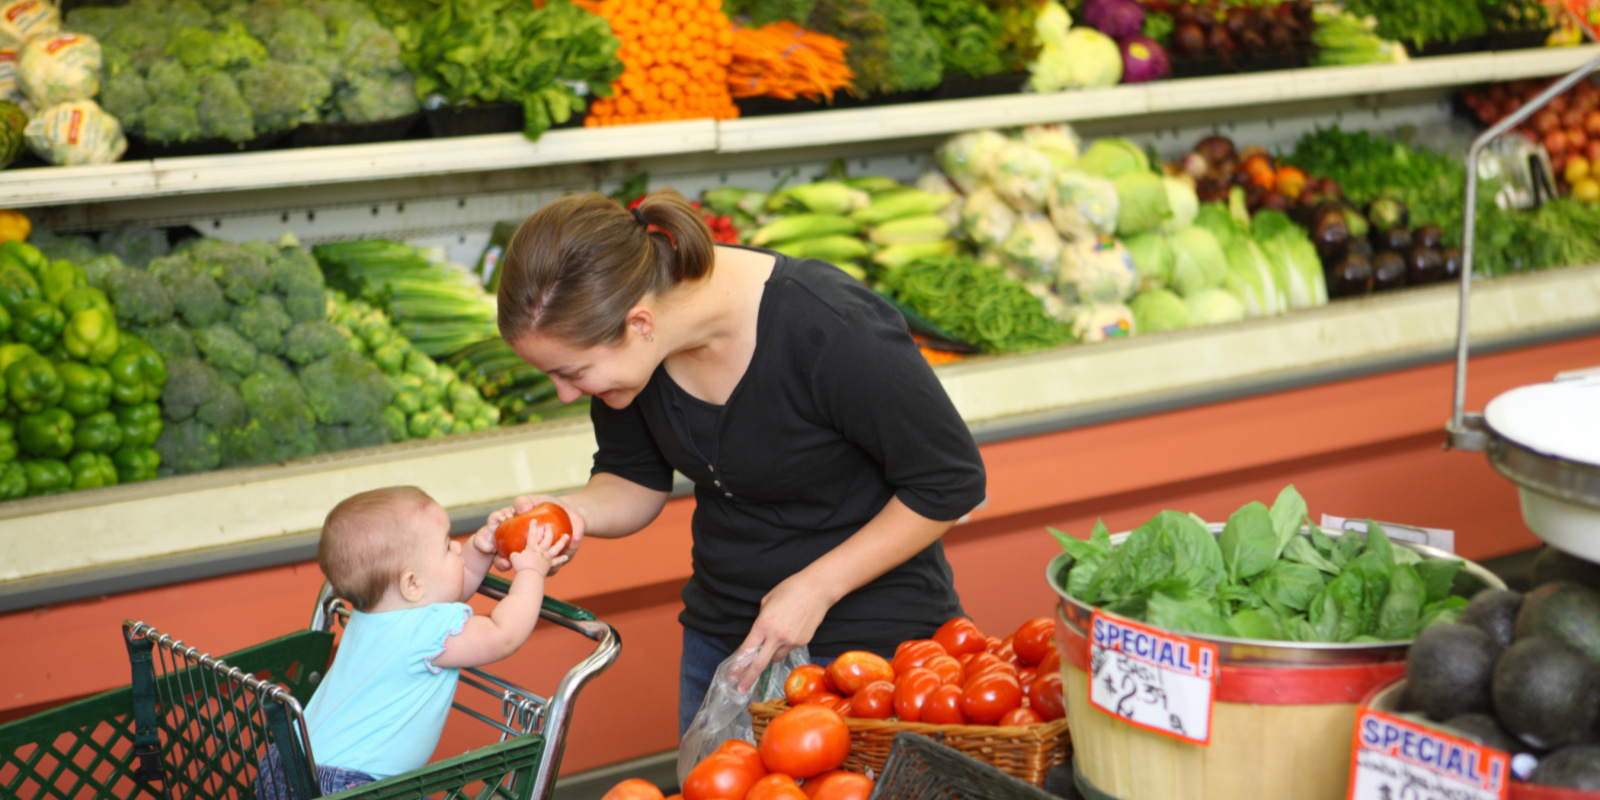 Explore the Grocery Store with Baby